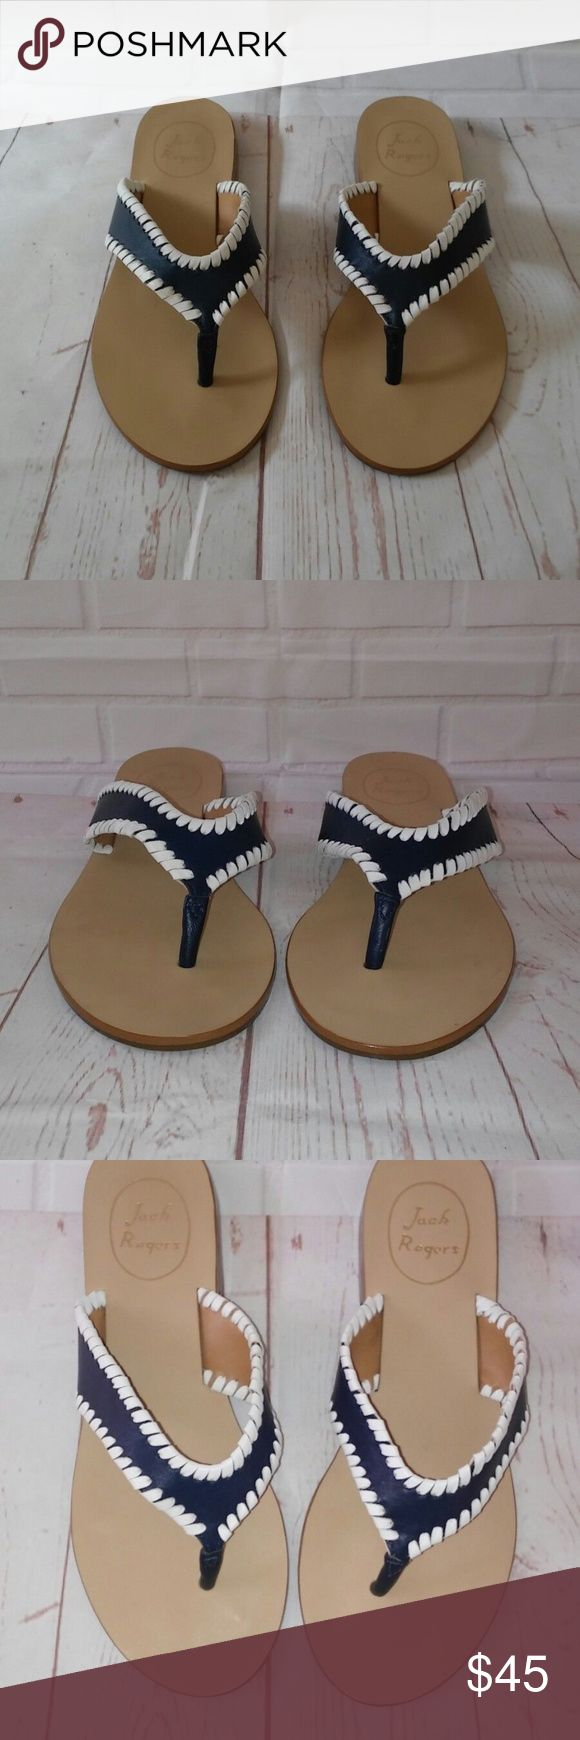 """Jack Rogers Womens 7 Blue and White Thong Sandals Jack Rogers Women's size 7 Blue and white sandals with t strap thong. Heel is 1/2"""". New without box and original MSRP $99 on bottom as pictured. Jack Rogers Shoes Sandals"""